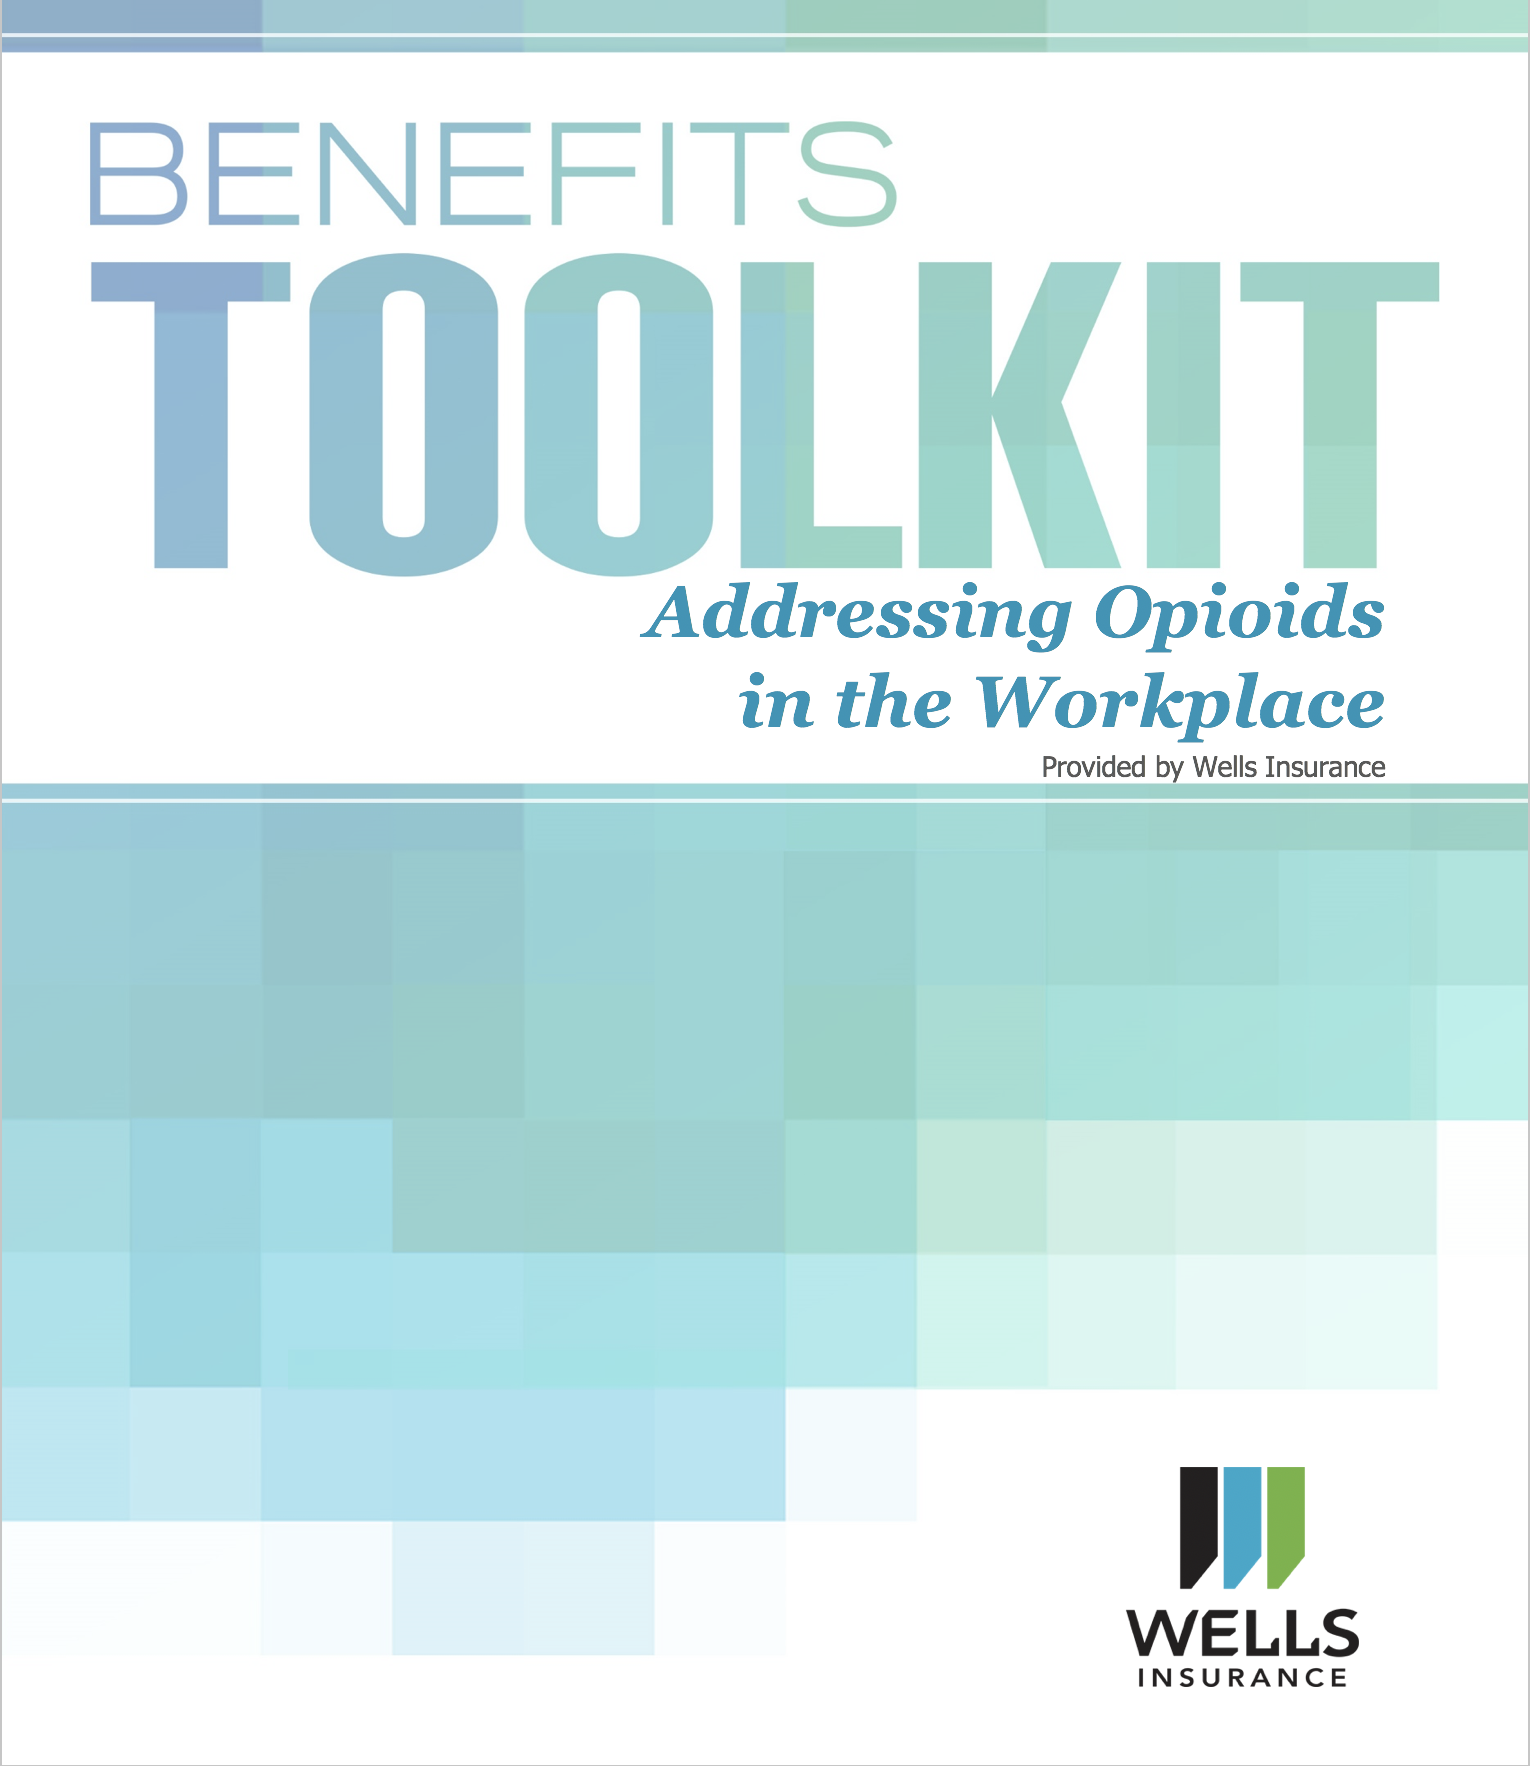 Addressing Opioids in the Workplace – Free Toolkit for Employers